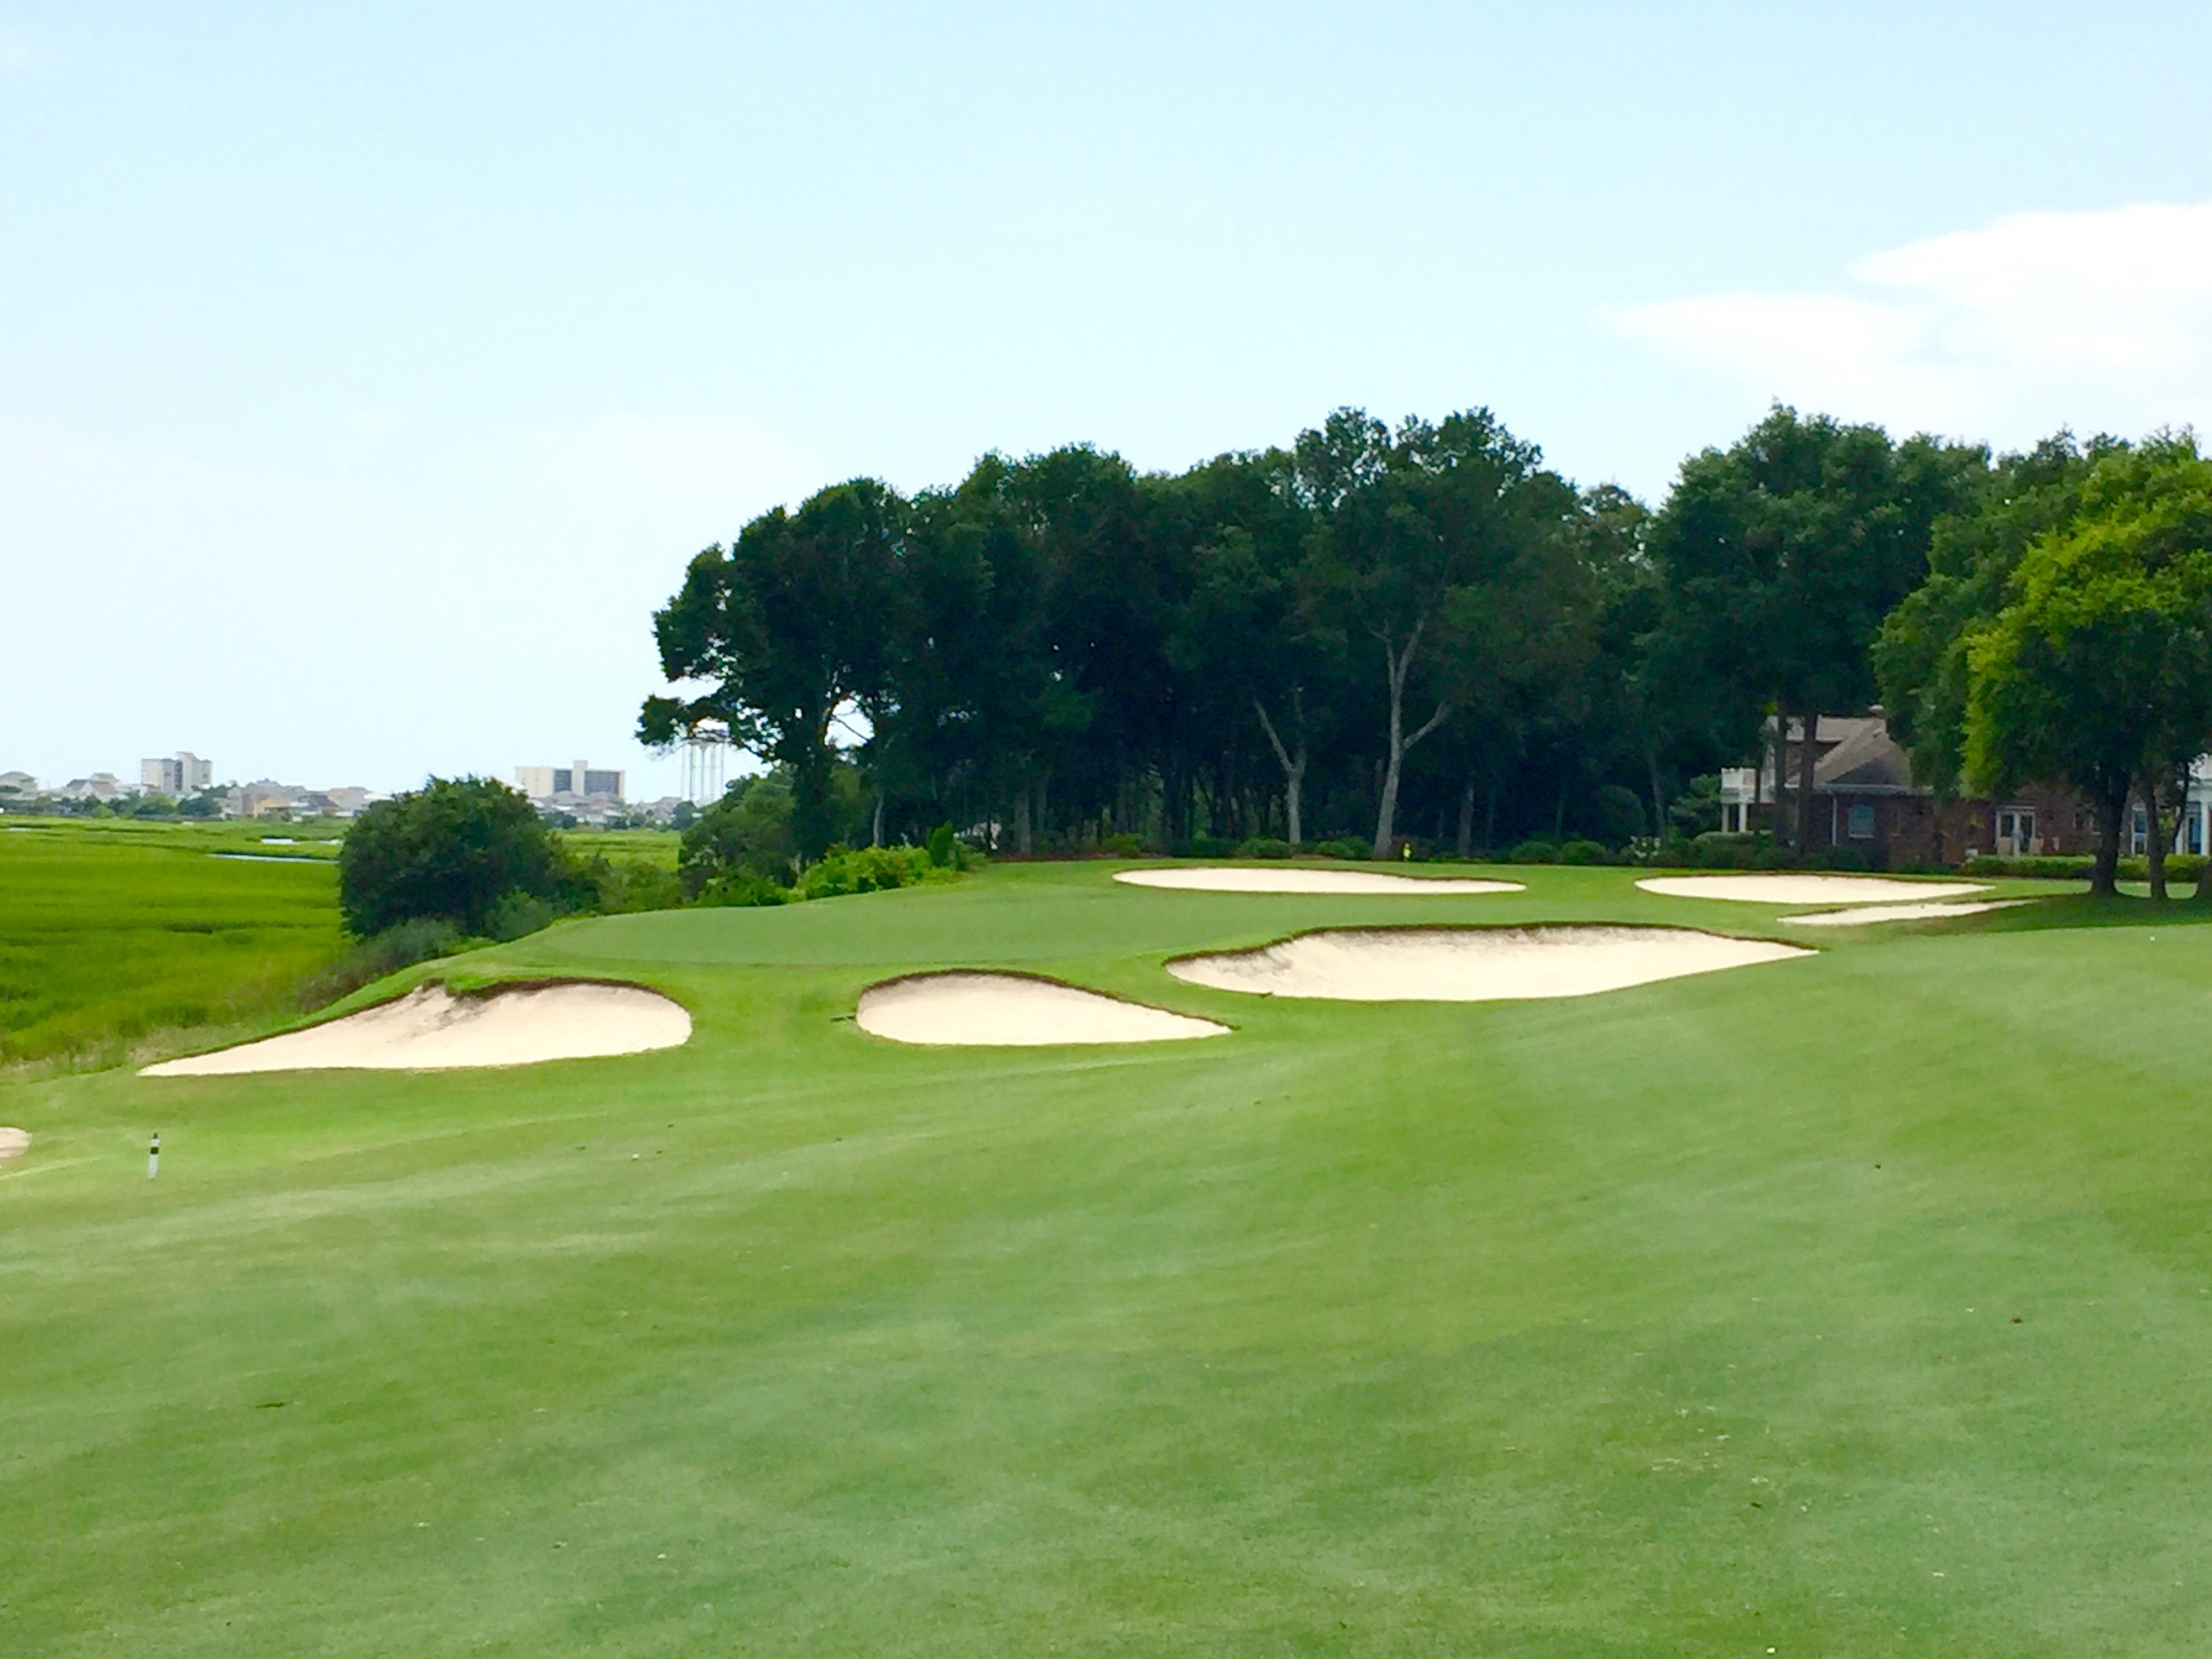 Tidewater Golf & Country Club in Little River, SC, is one of the top 30 courses you can play in South Carolina according to that state's golf panel.  Located just north of Myrtle Beach, the course is surrounded by homes and water.